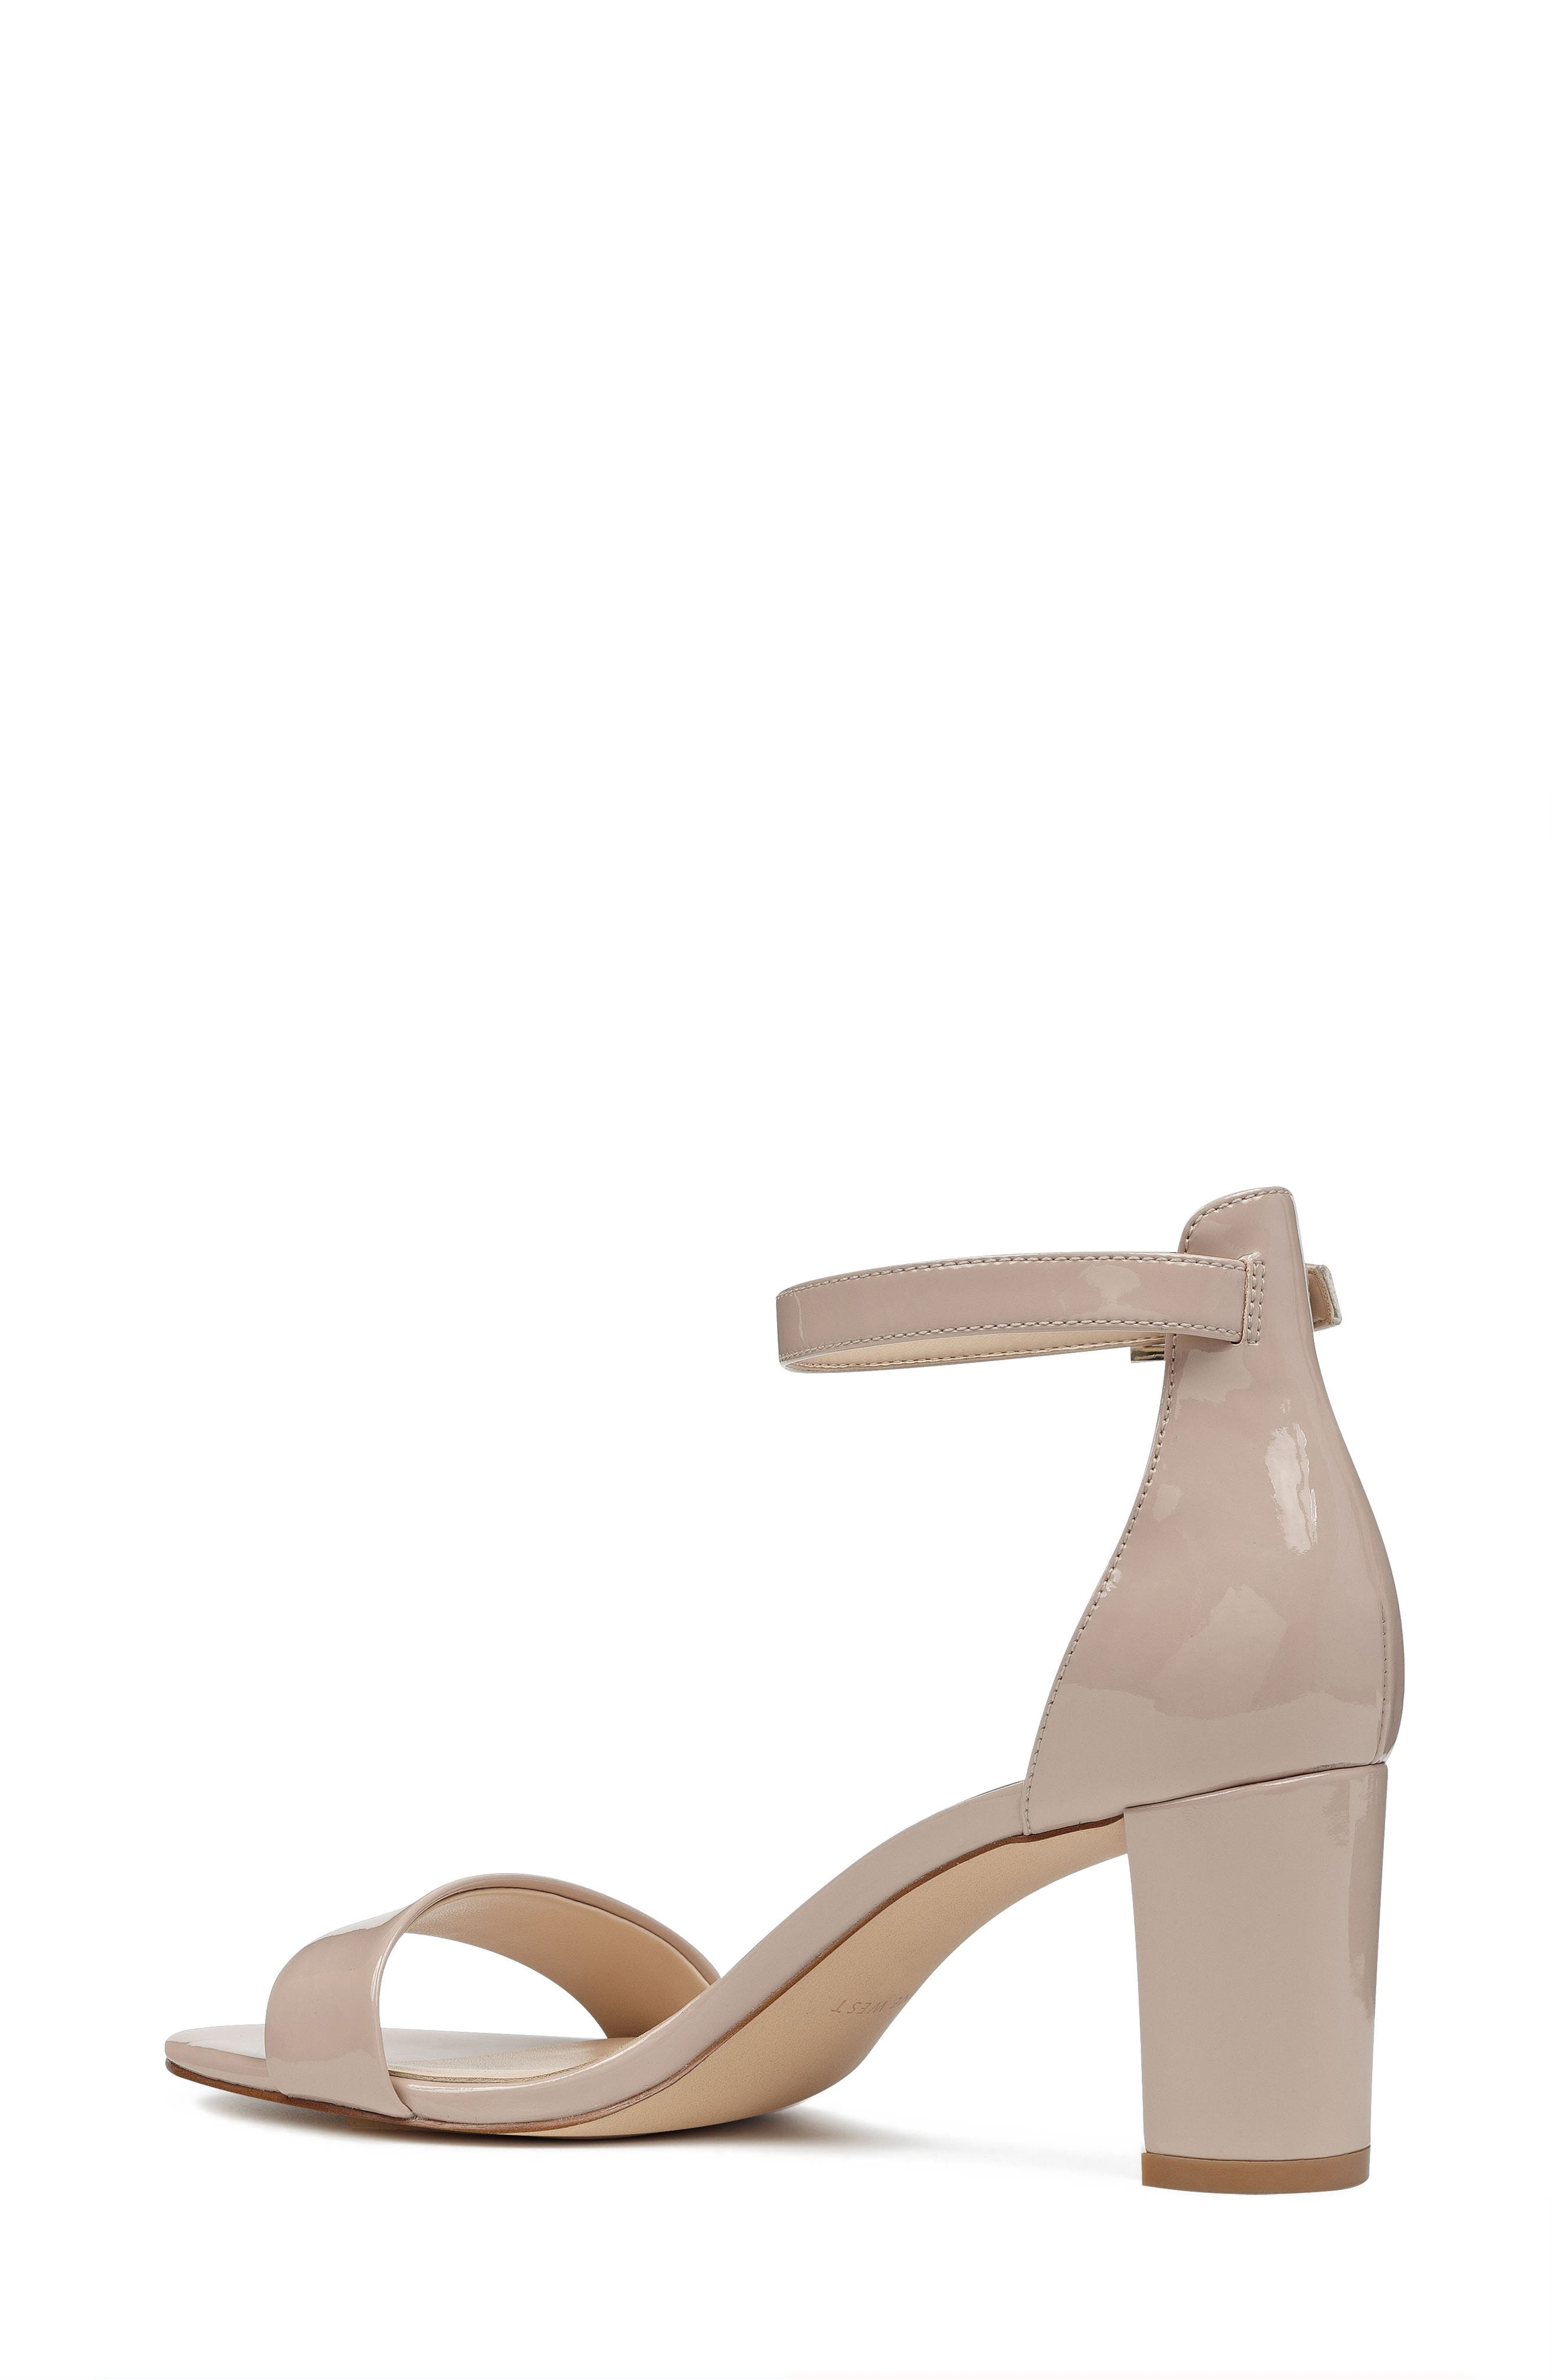 Pruce Ankle Strap Sandal,                             Alternate thumbnail 2, color,                             Natural Patent